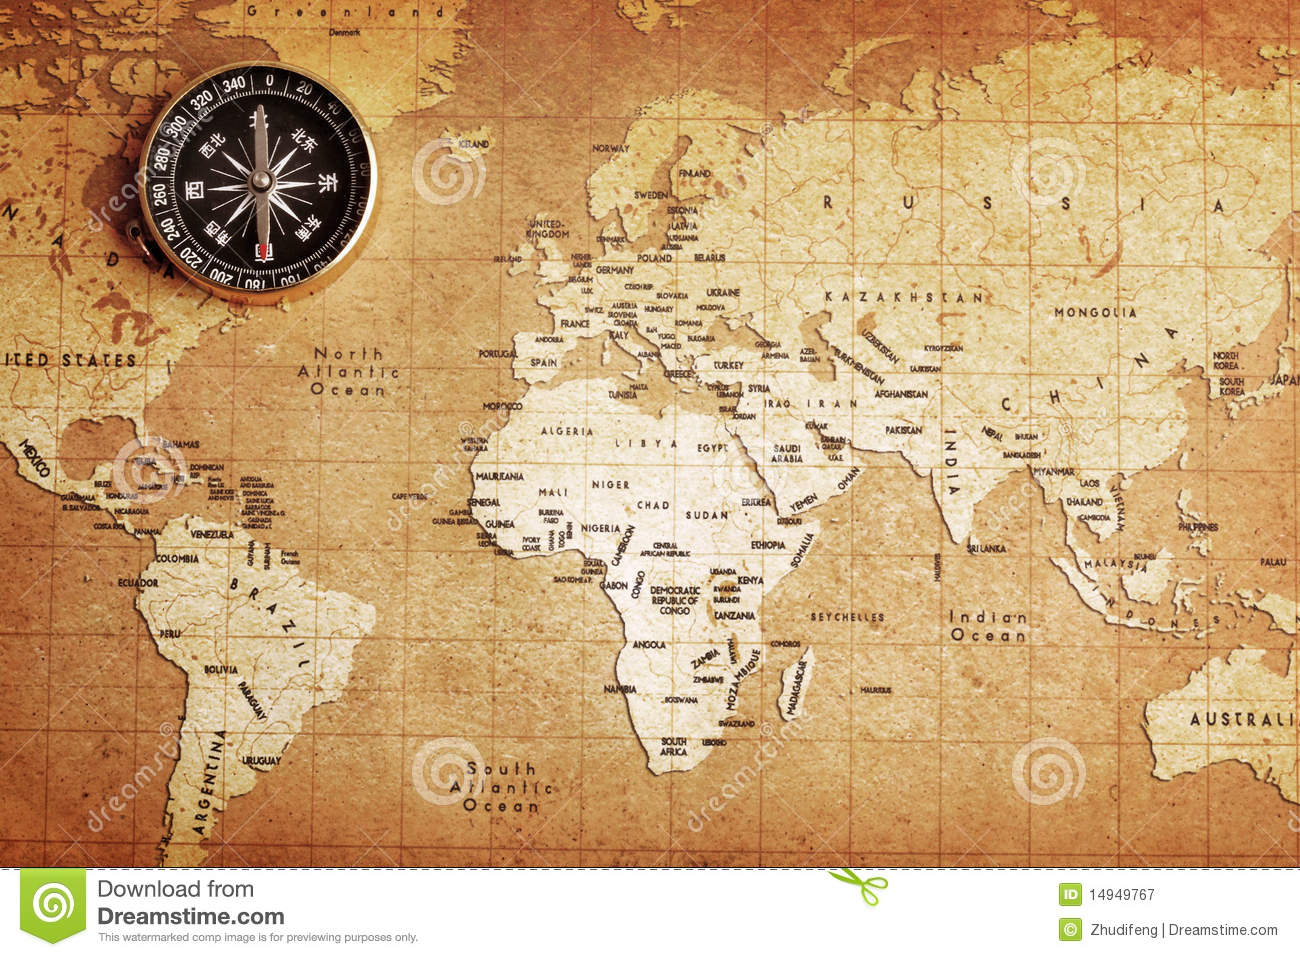 ... On A Treasure Map Royalty Free Stock Photography - Image: 14949767